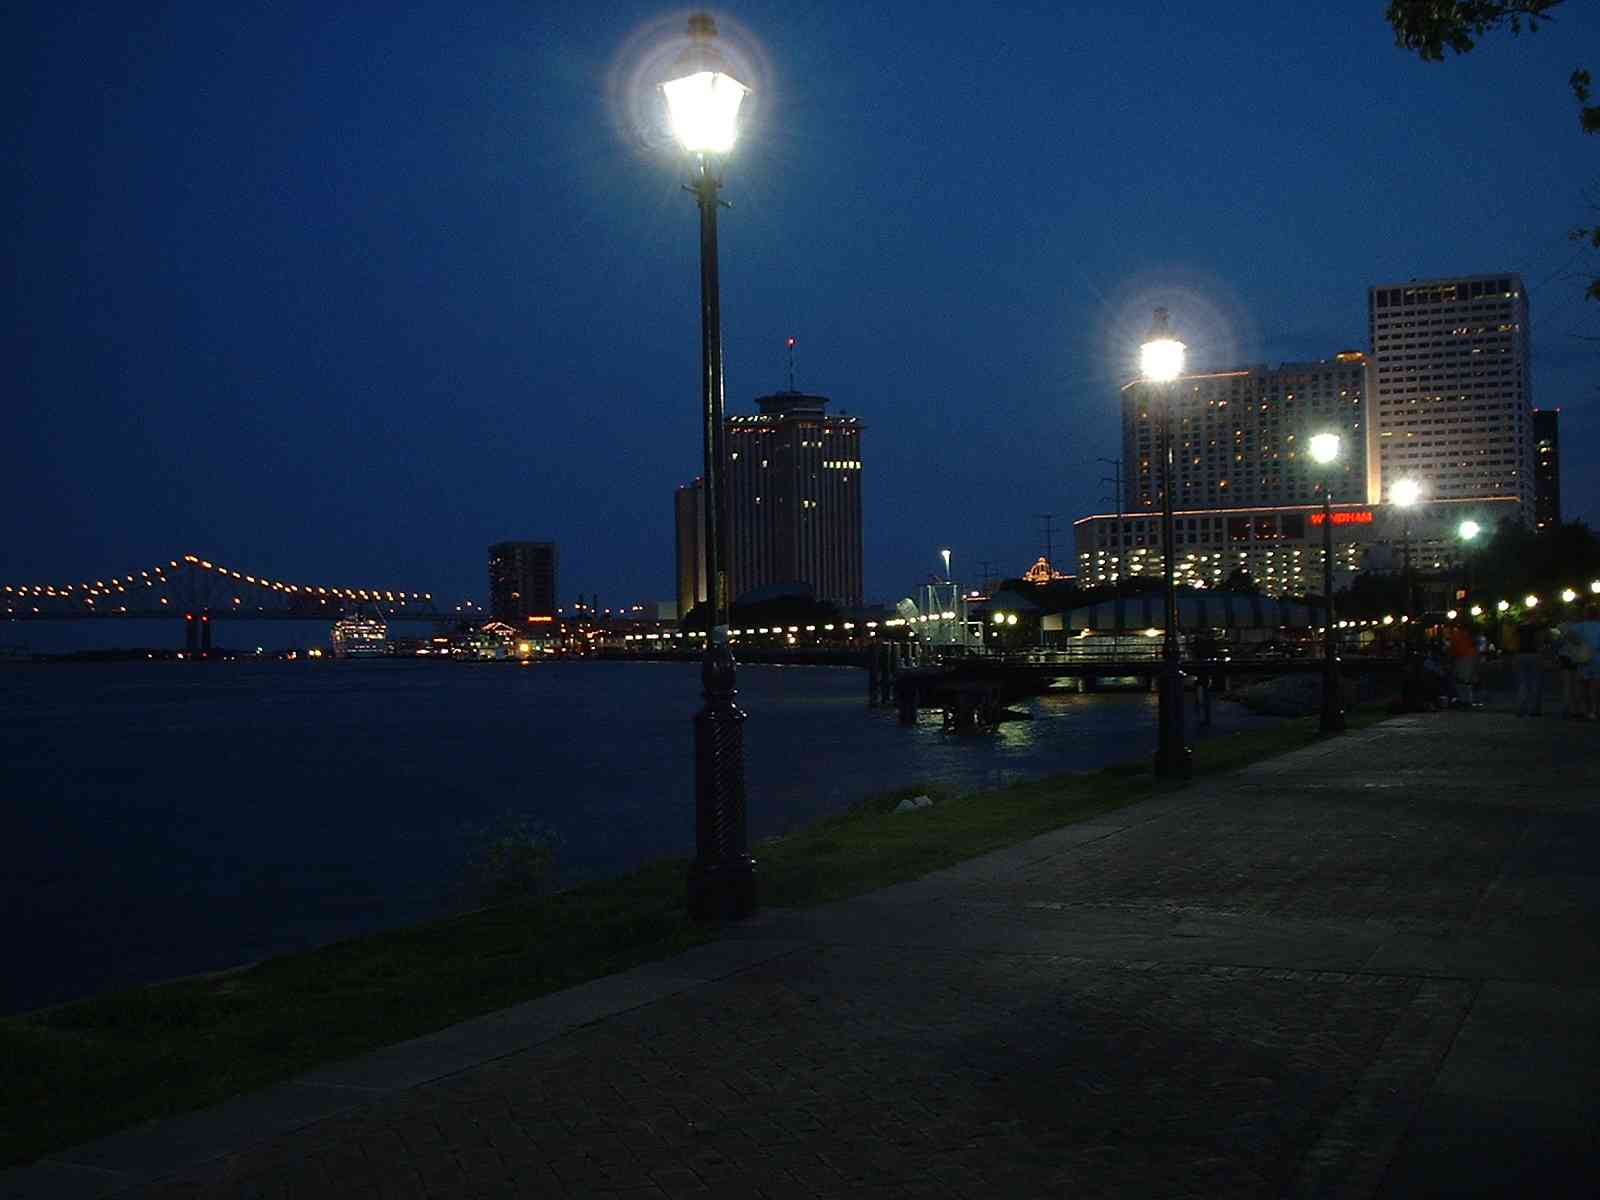 Mississippi river, New Orleans, Louisiana 2002